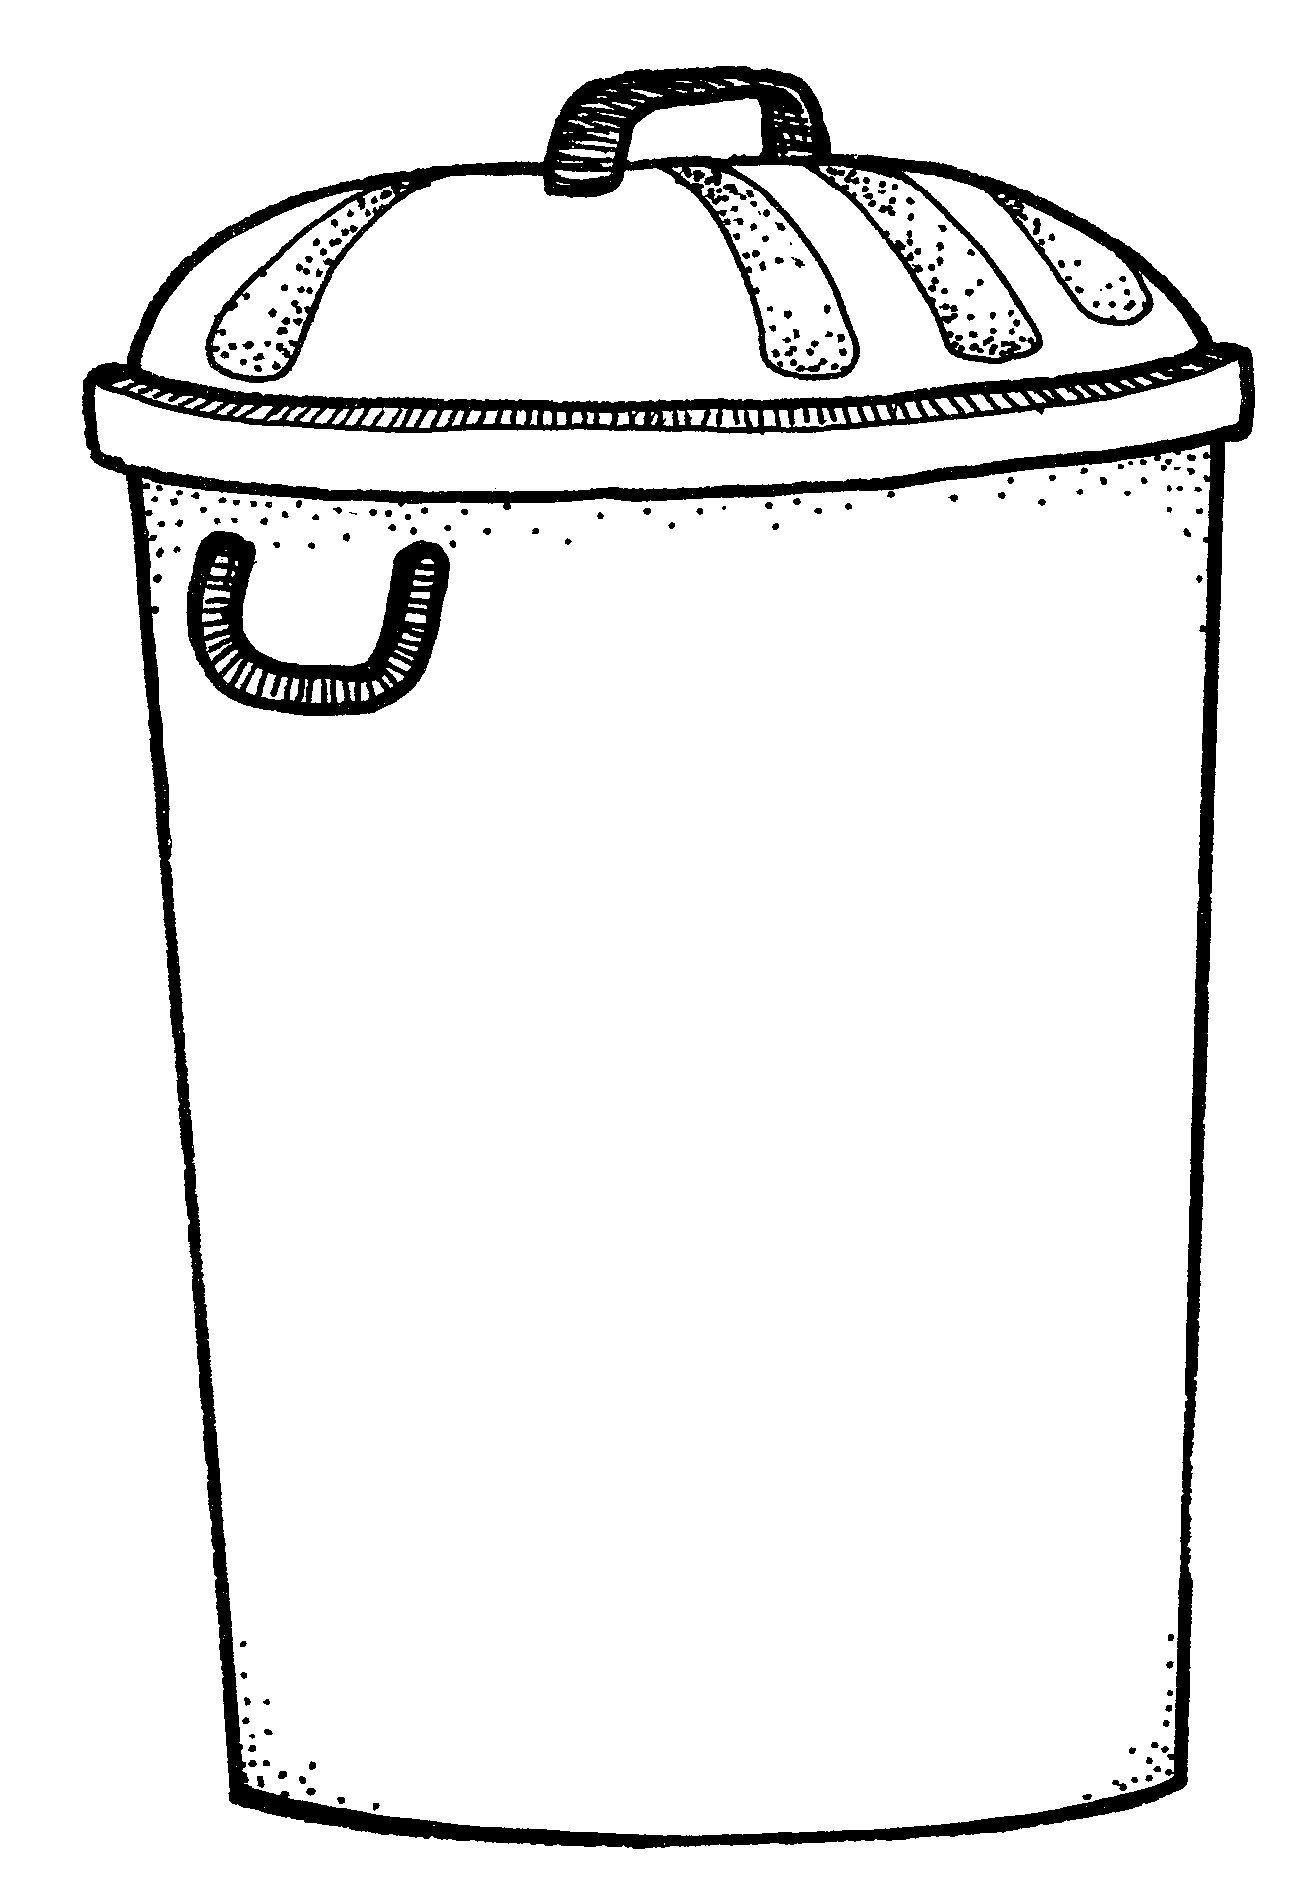 Trash can clipart black and white clip royalty free Trash can clipart black and white 2 » Clipart Portal clip royalty free